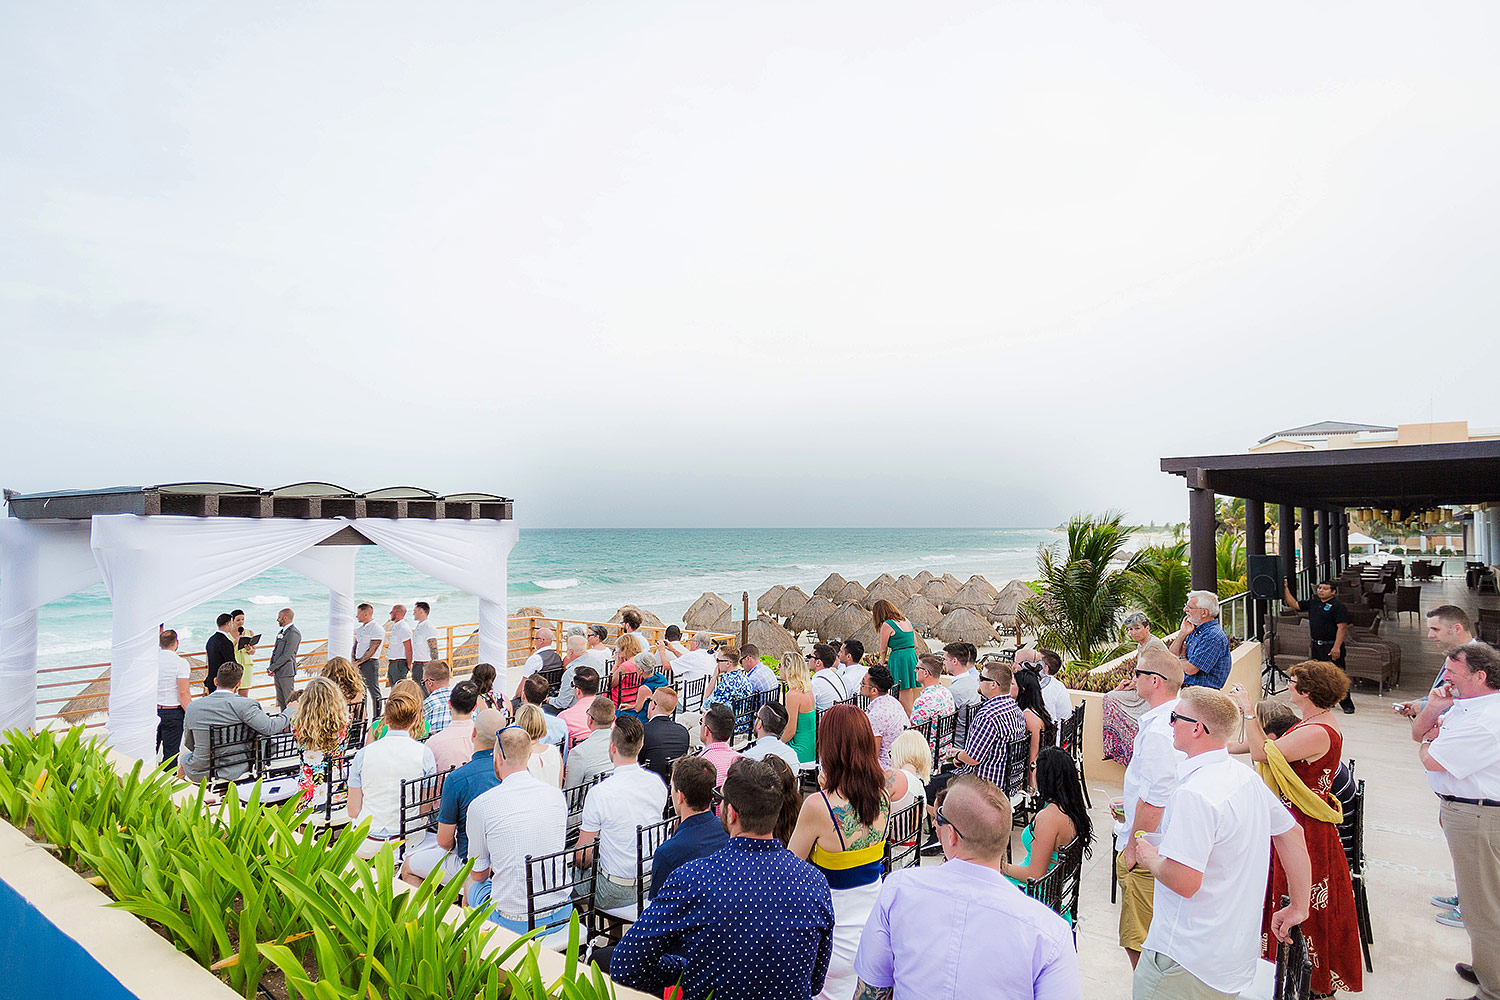 Pergola Wedding Location At Now Jade Riviera Cancun